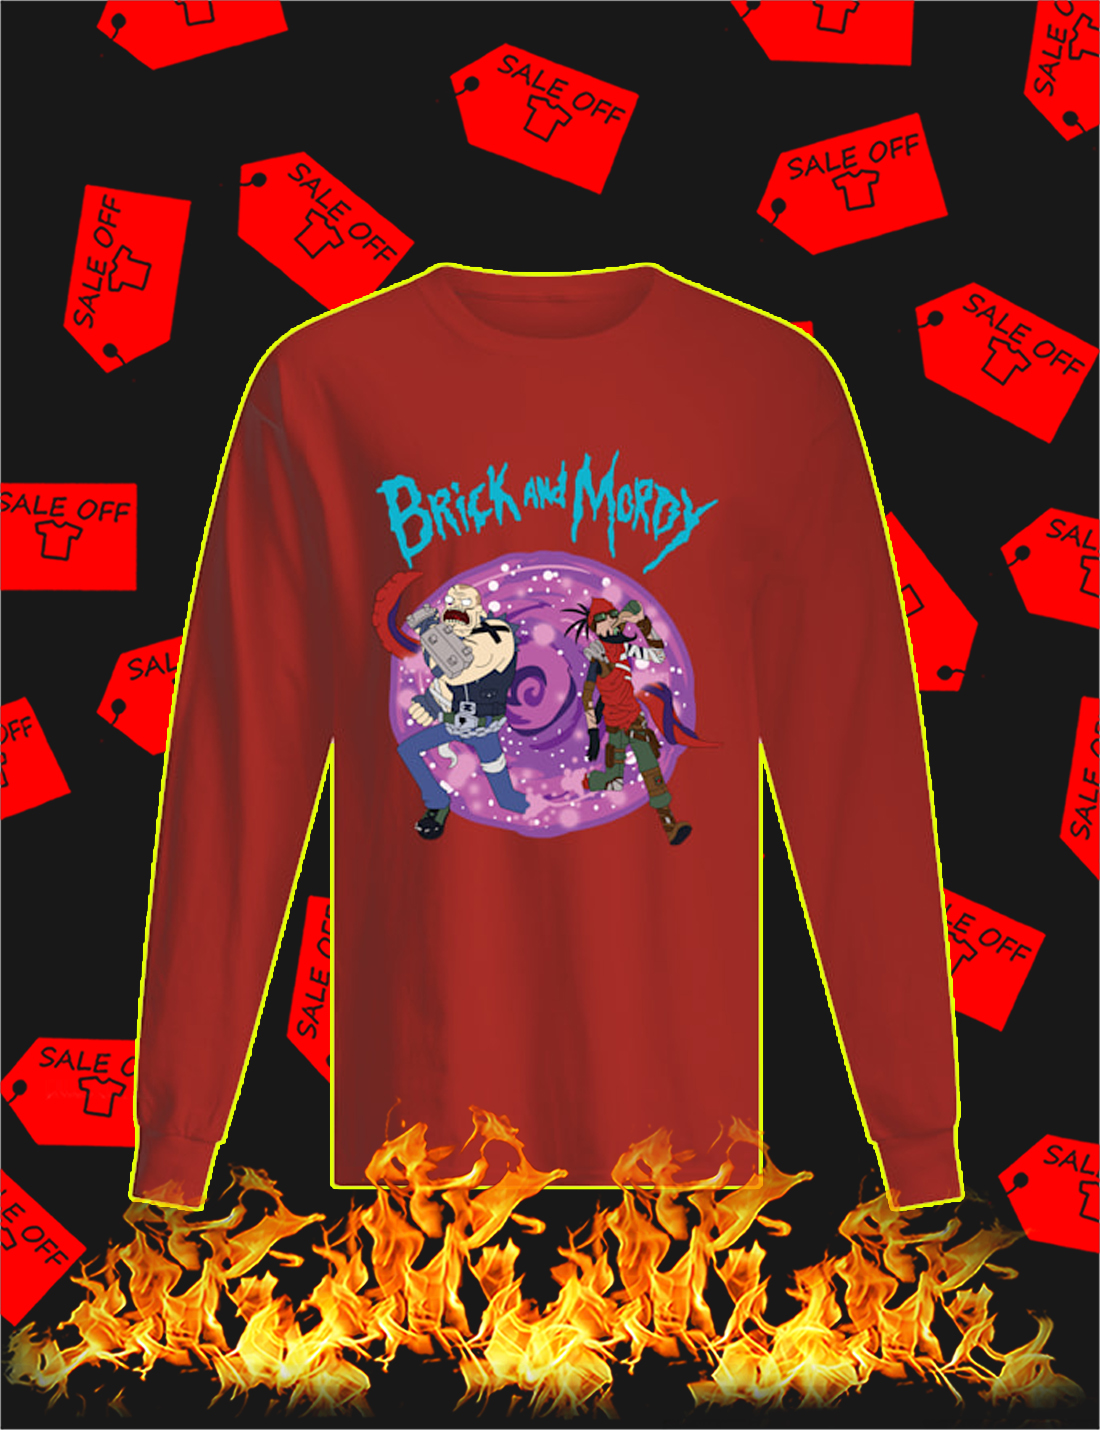 Brick and mordy Long Sleeve Tee